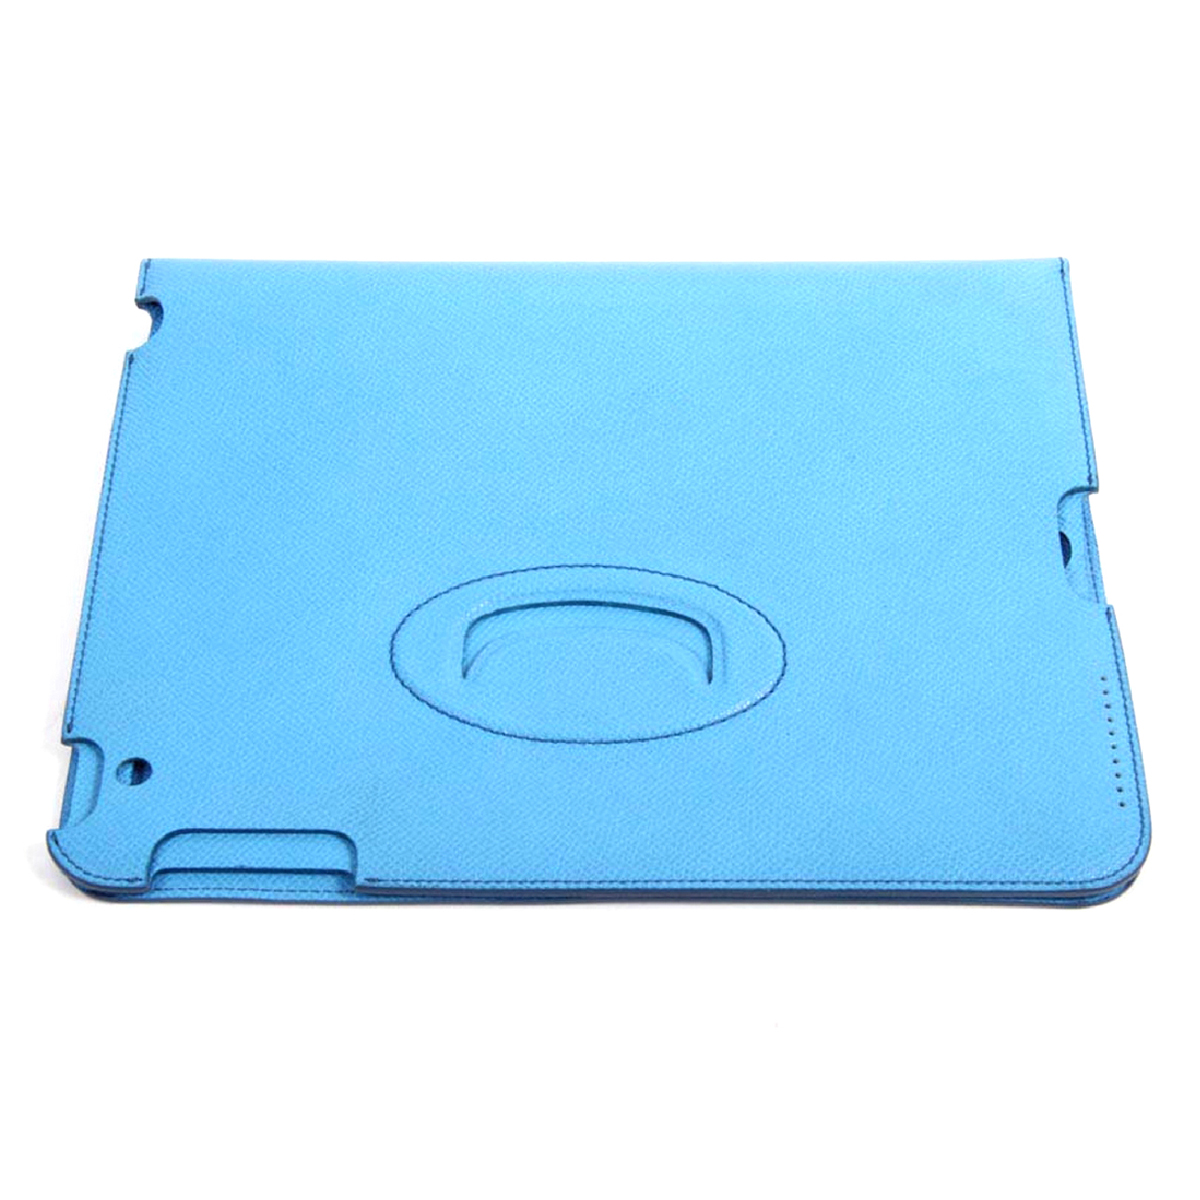 Tod\'s womens cover tablet WPADK1300DOUU608 | Products | Pinterest ...